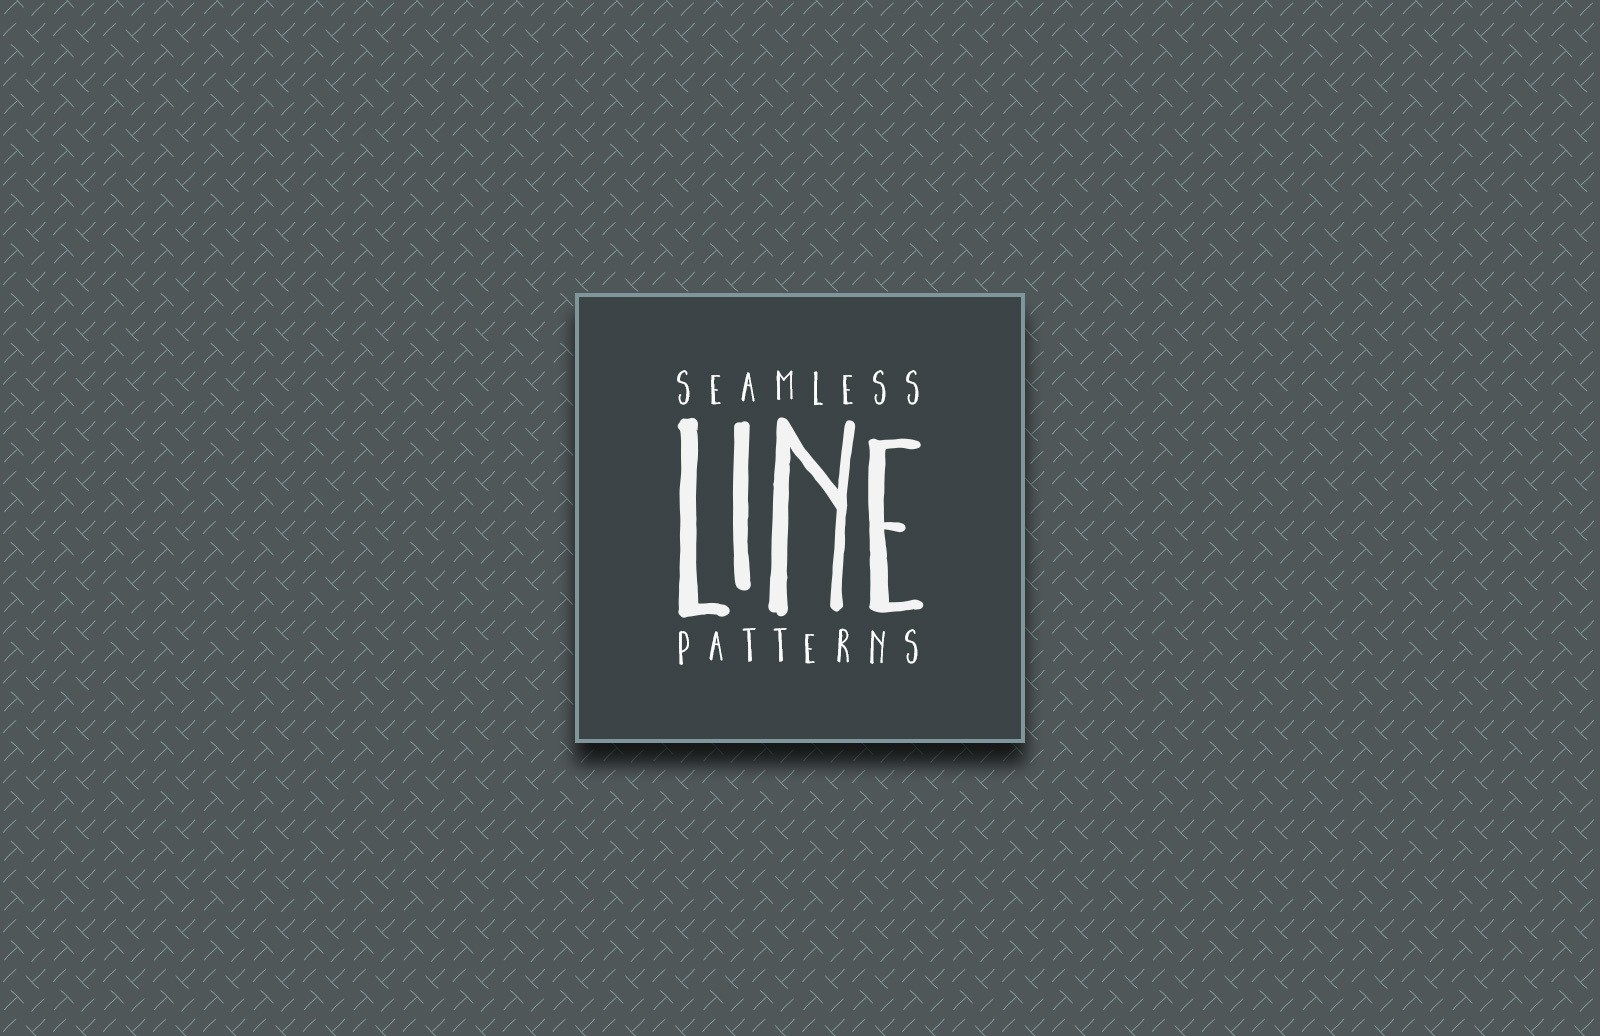 Seamless Vector Line Patterns